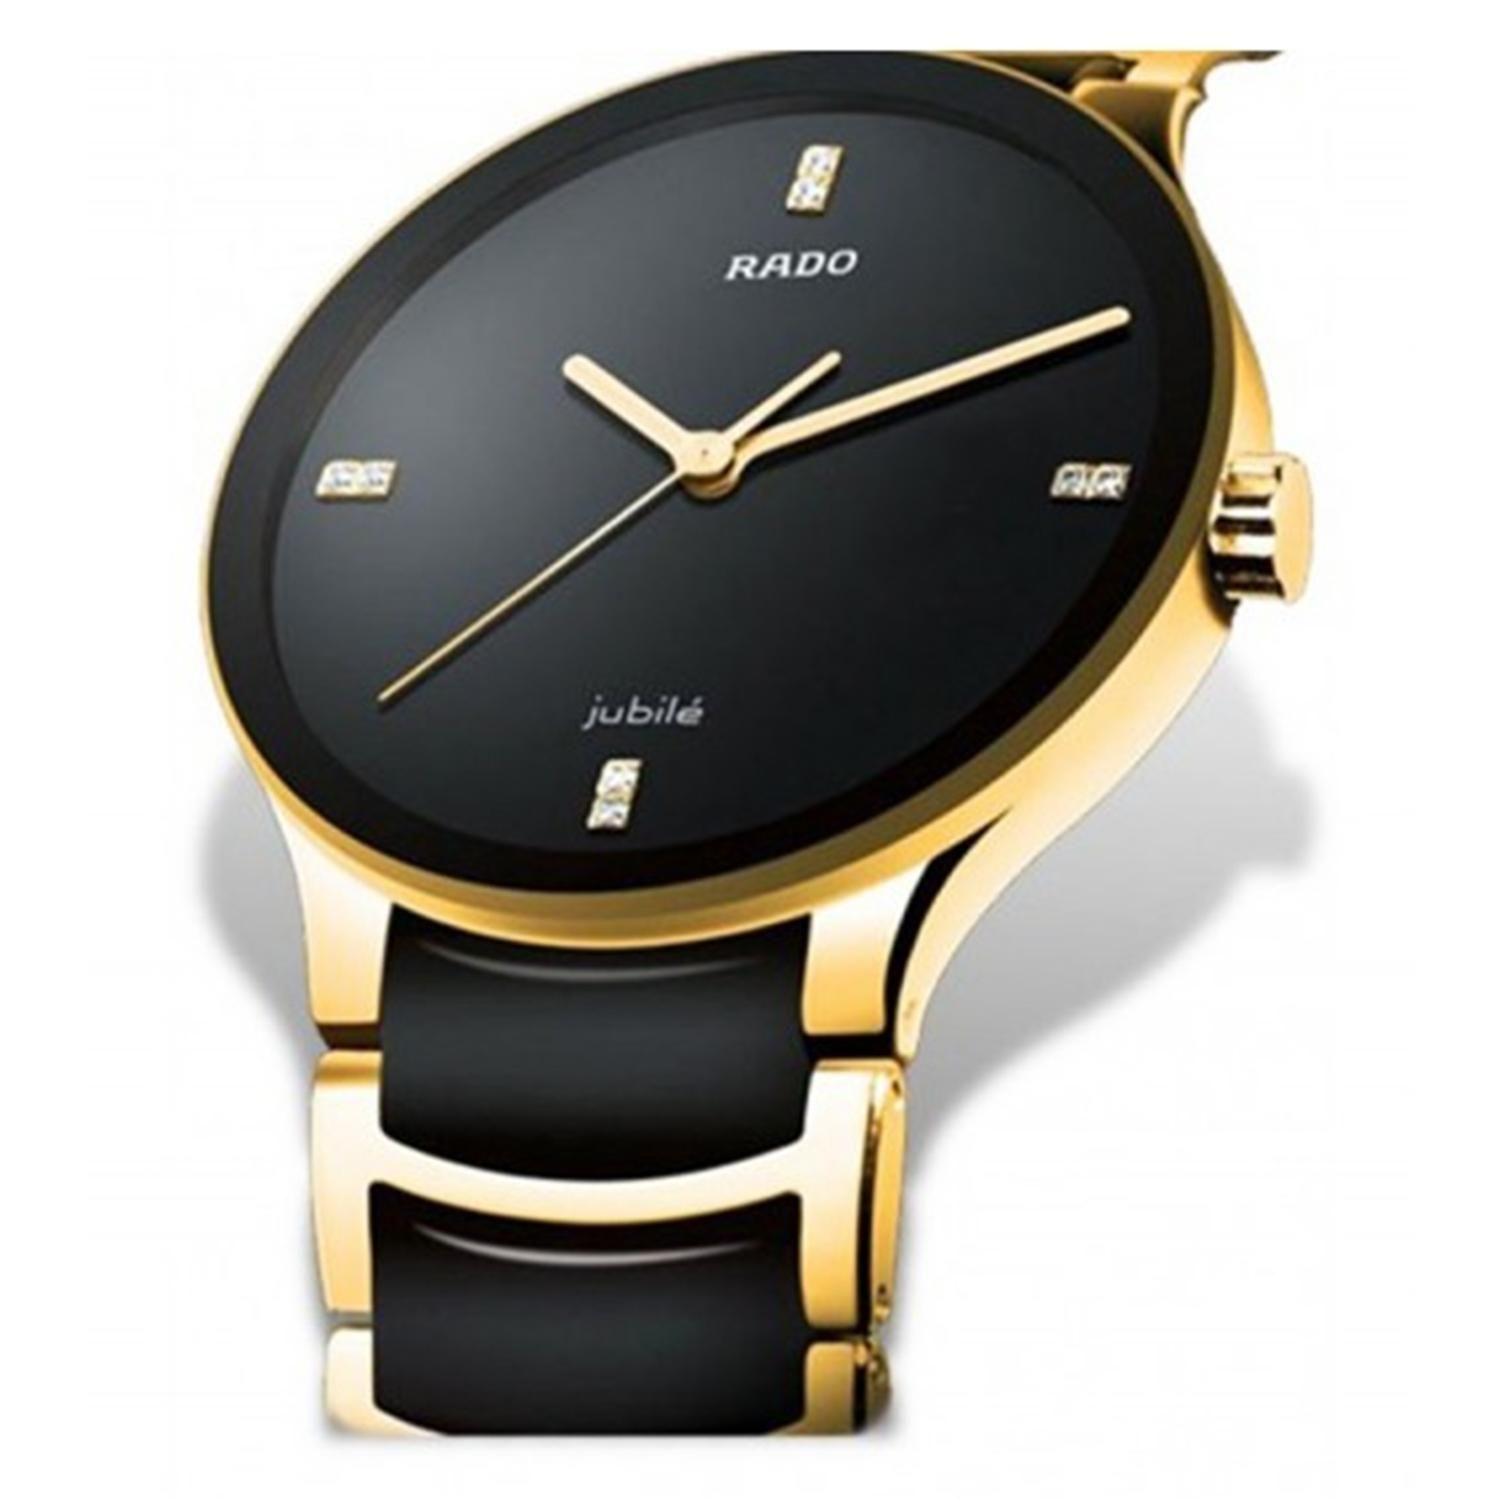 Beautyfashions Ph 855 522 6832 Watches For Men Luxury Watches For Men Expensive Watches